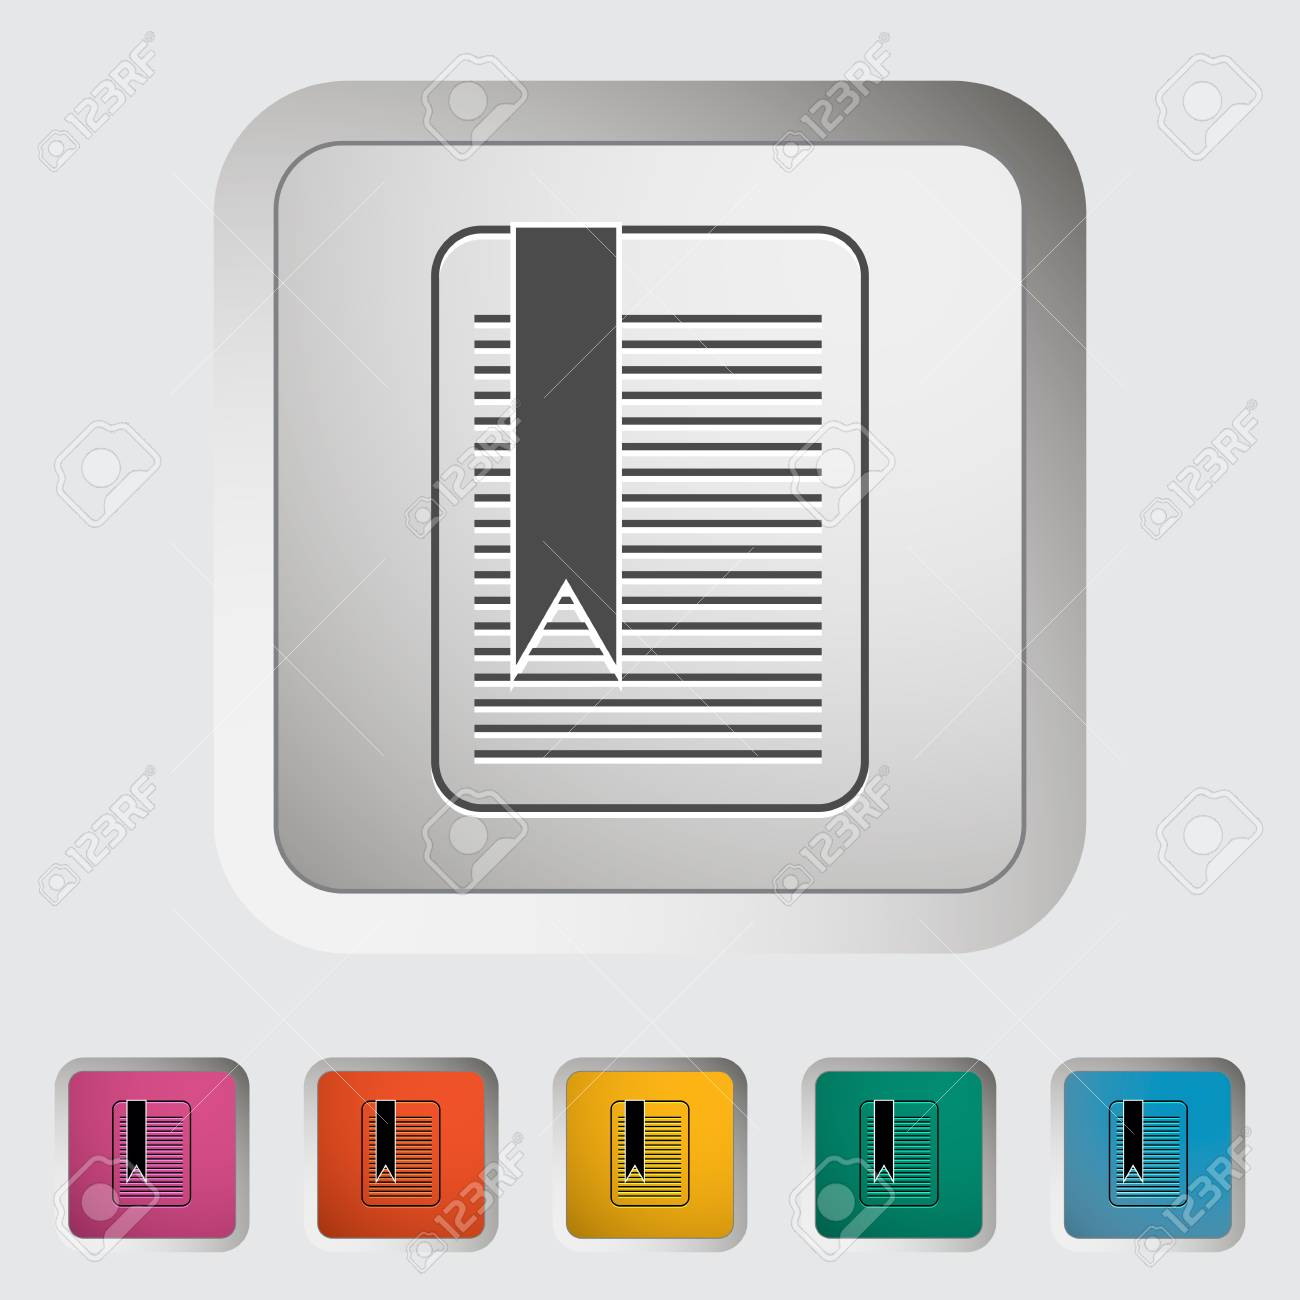 Bookmark. Single icon. Vector illustration. Stock Vector - 19210814